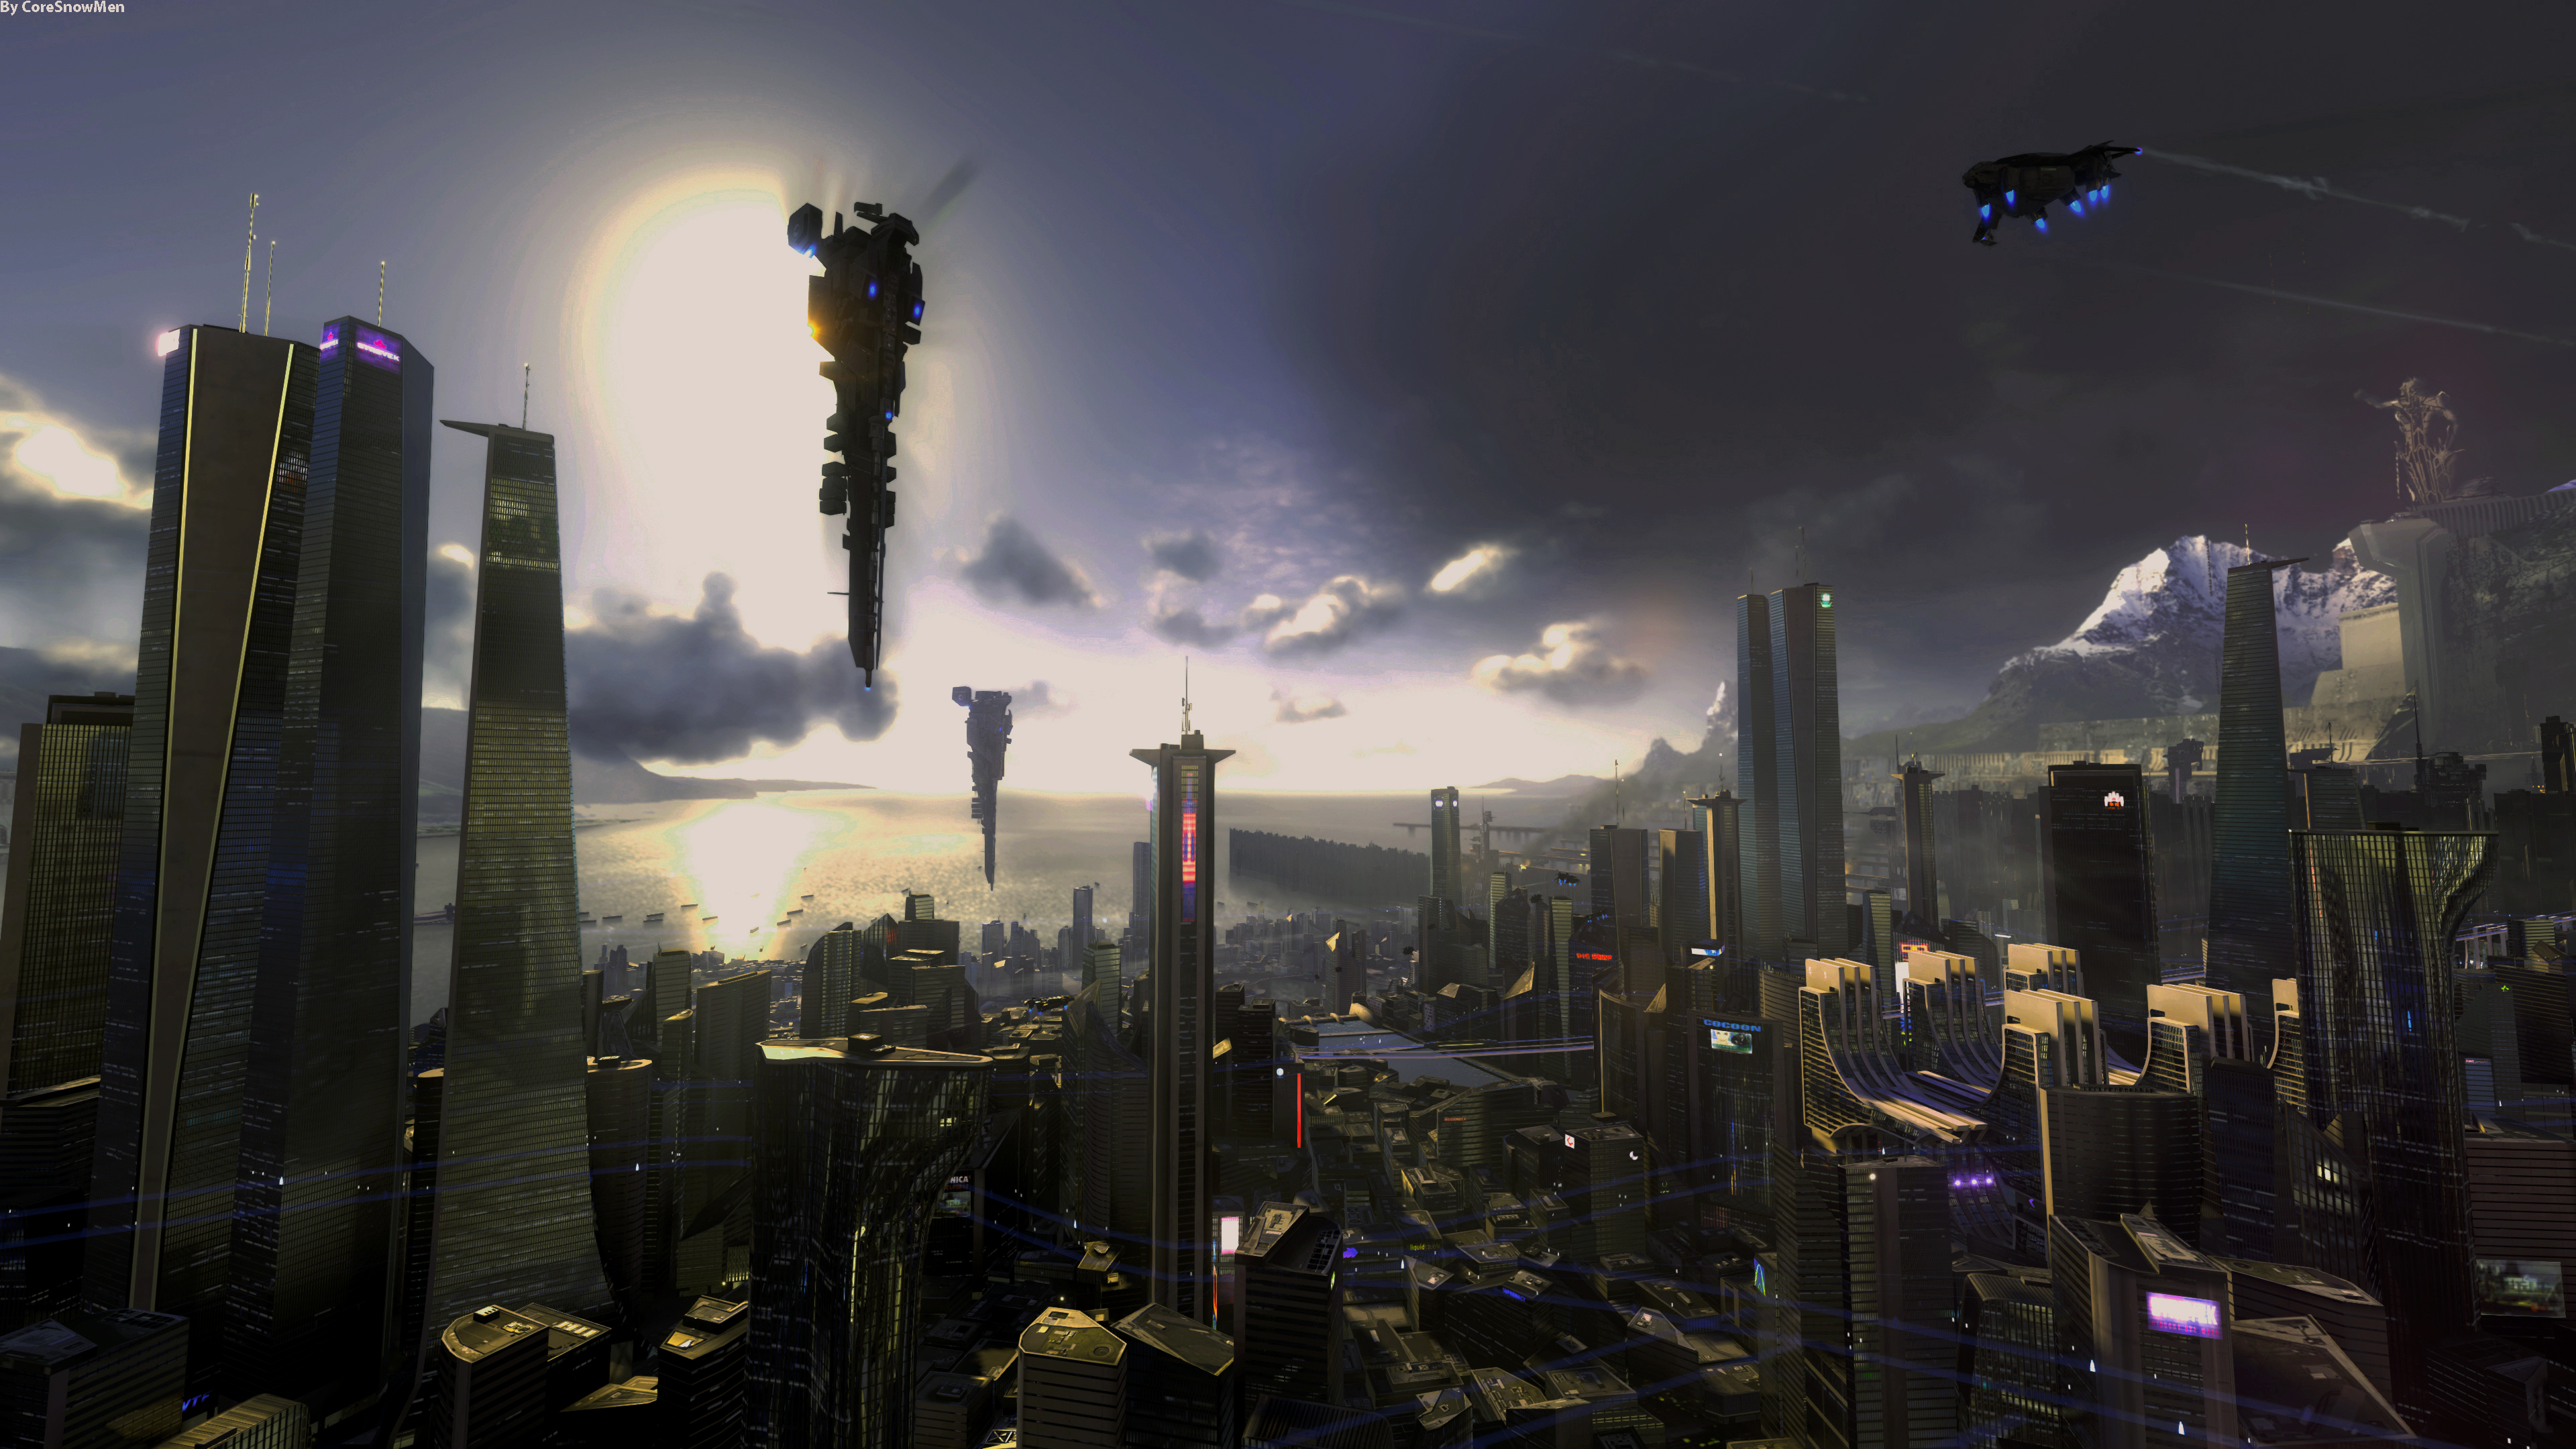 Killzone Shadow Fall Ps4 Wallpaper City Of Future 4k Ultra Fond D 233 Cran Hd Arri 232 Re Plan